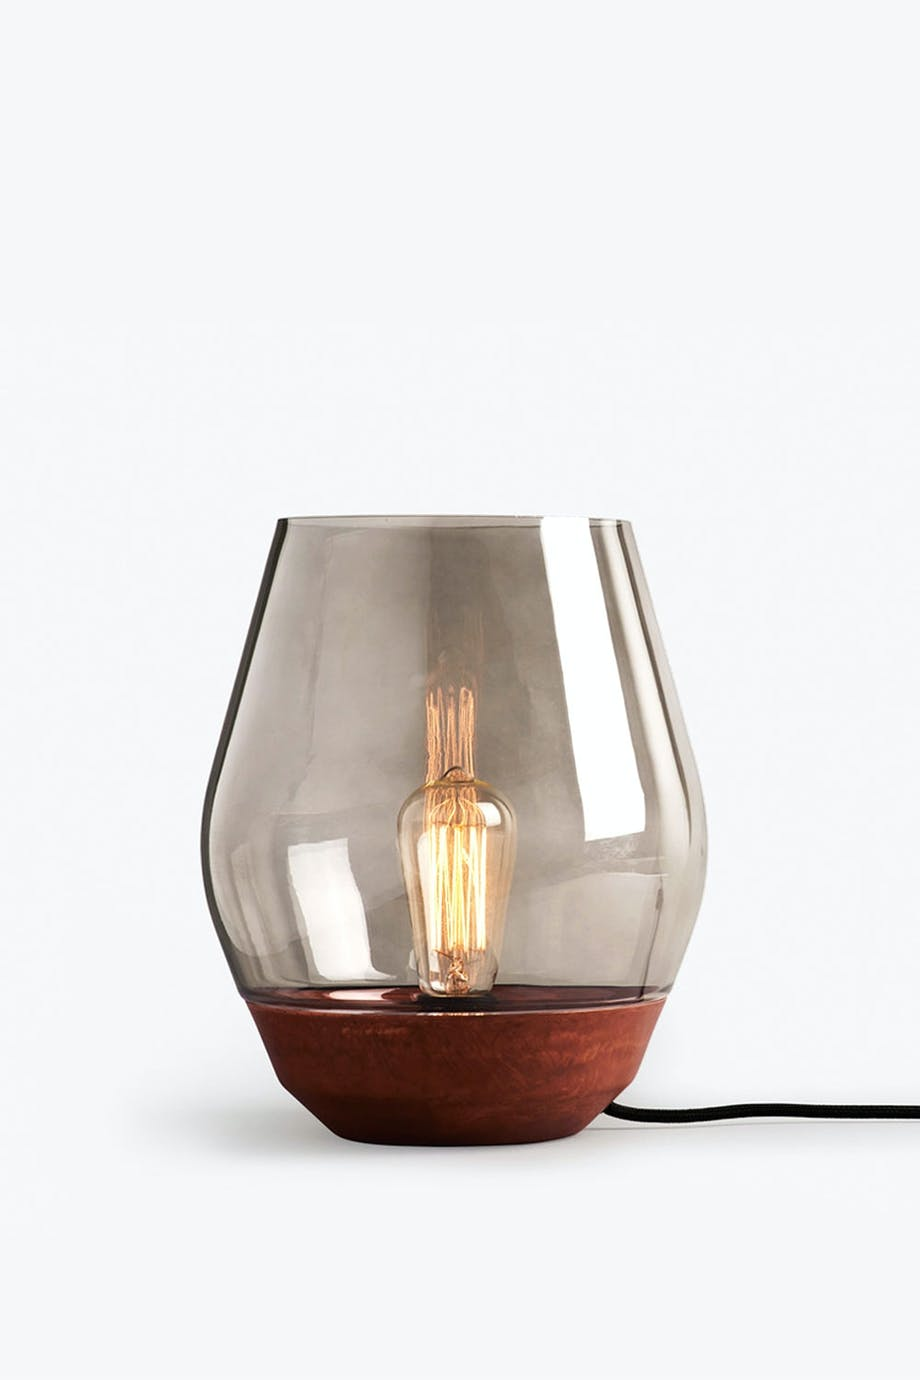 Lampe, Bowl, New Works